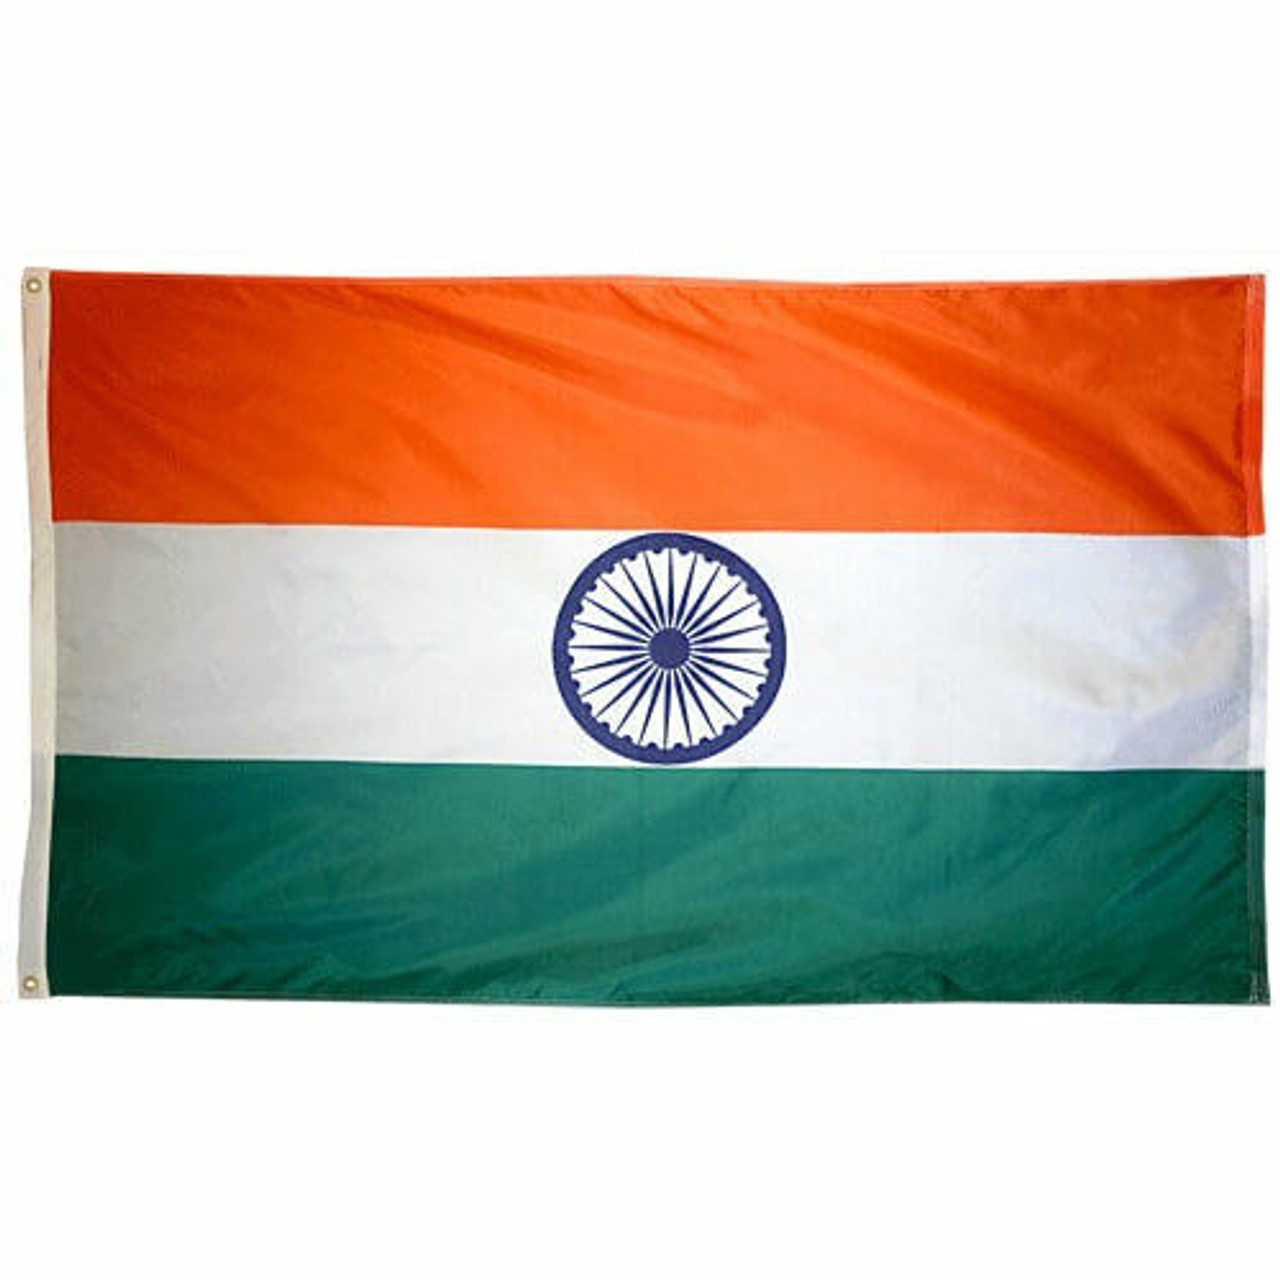 Nylon flag of India, with three horizontal stripes. The top third is orange, the middle white, and the bottom green. In the middle, in the white stripe, there is a 24 spoke wheel in navy blue. Along one end of the flag is a canvas header with brass grommets for attaching the flag to a flagpole with snaps or hooks.